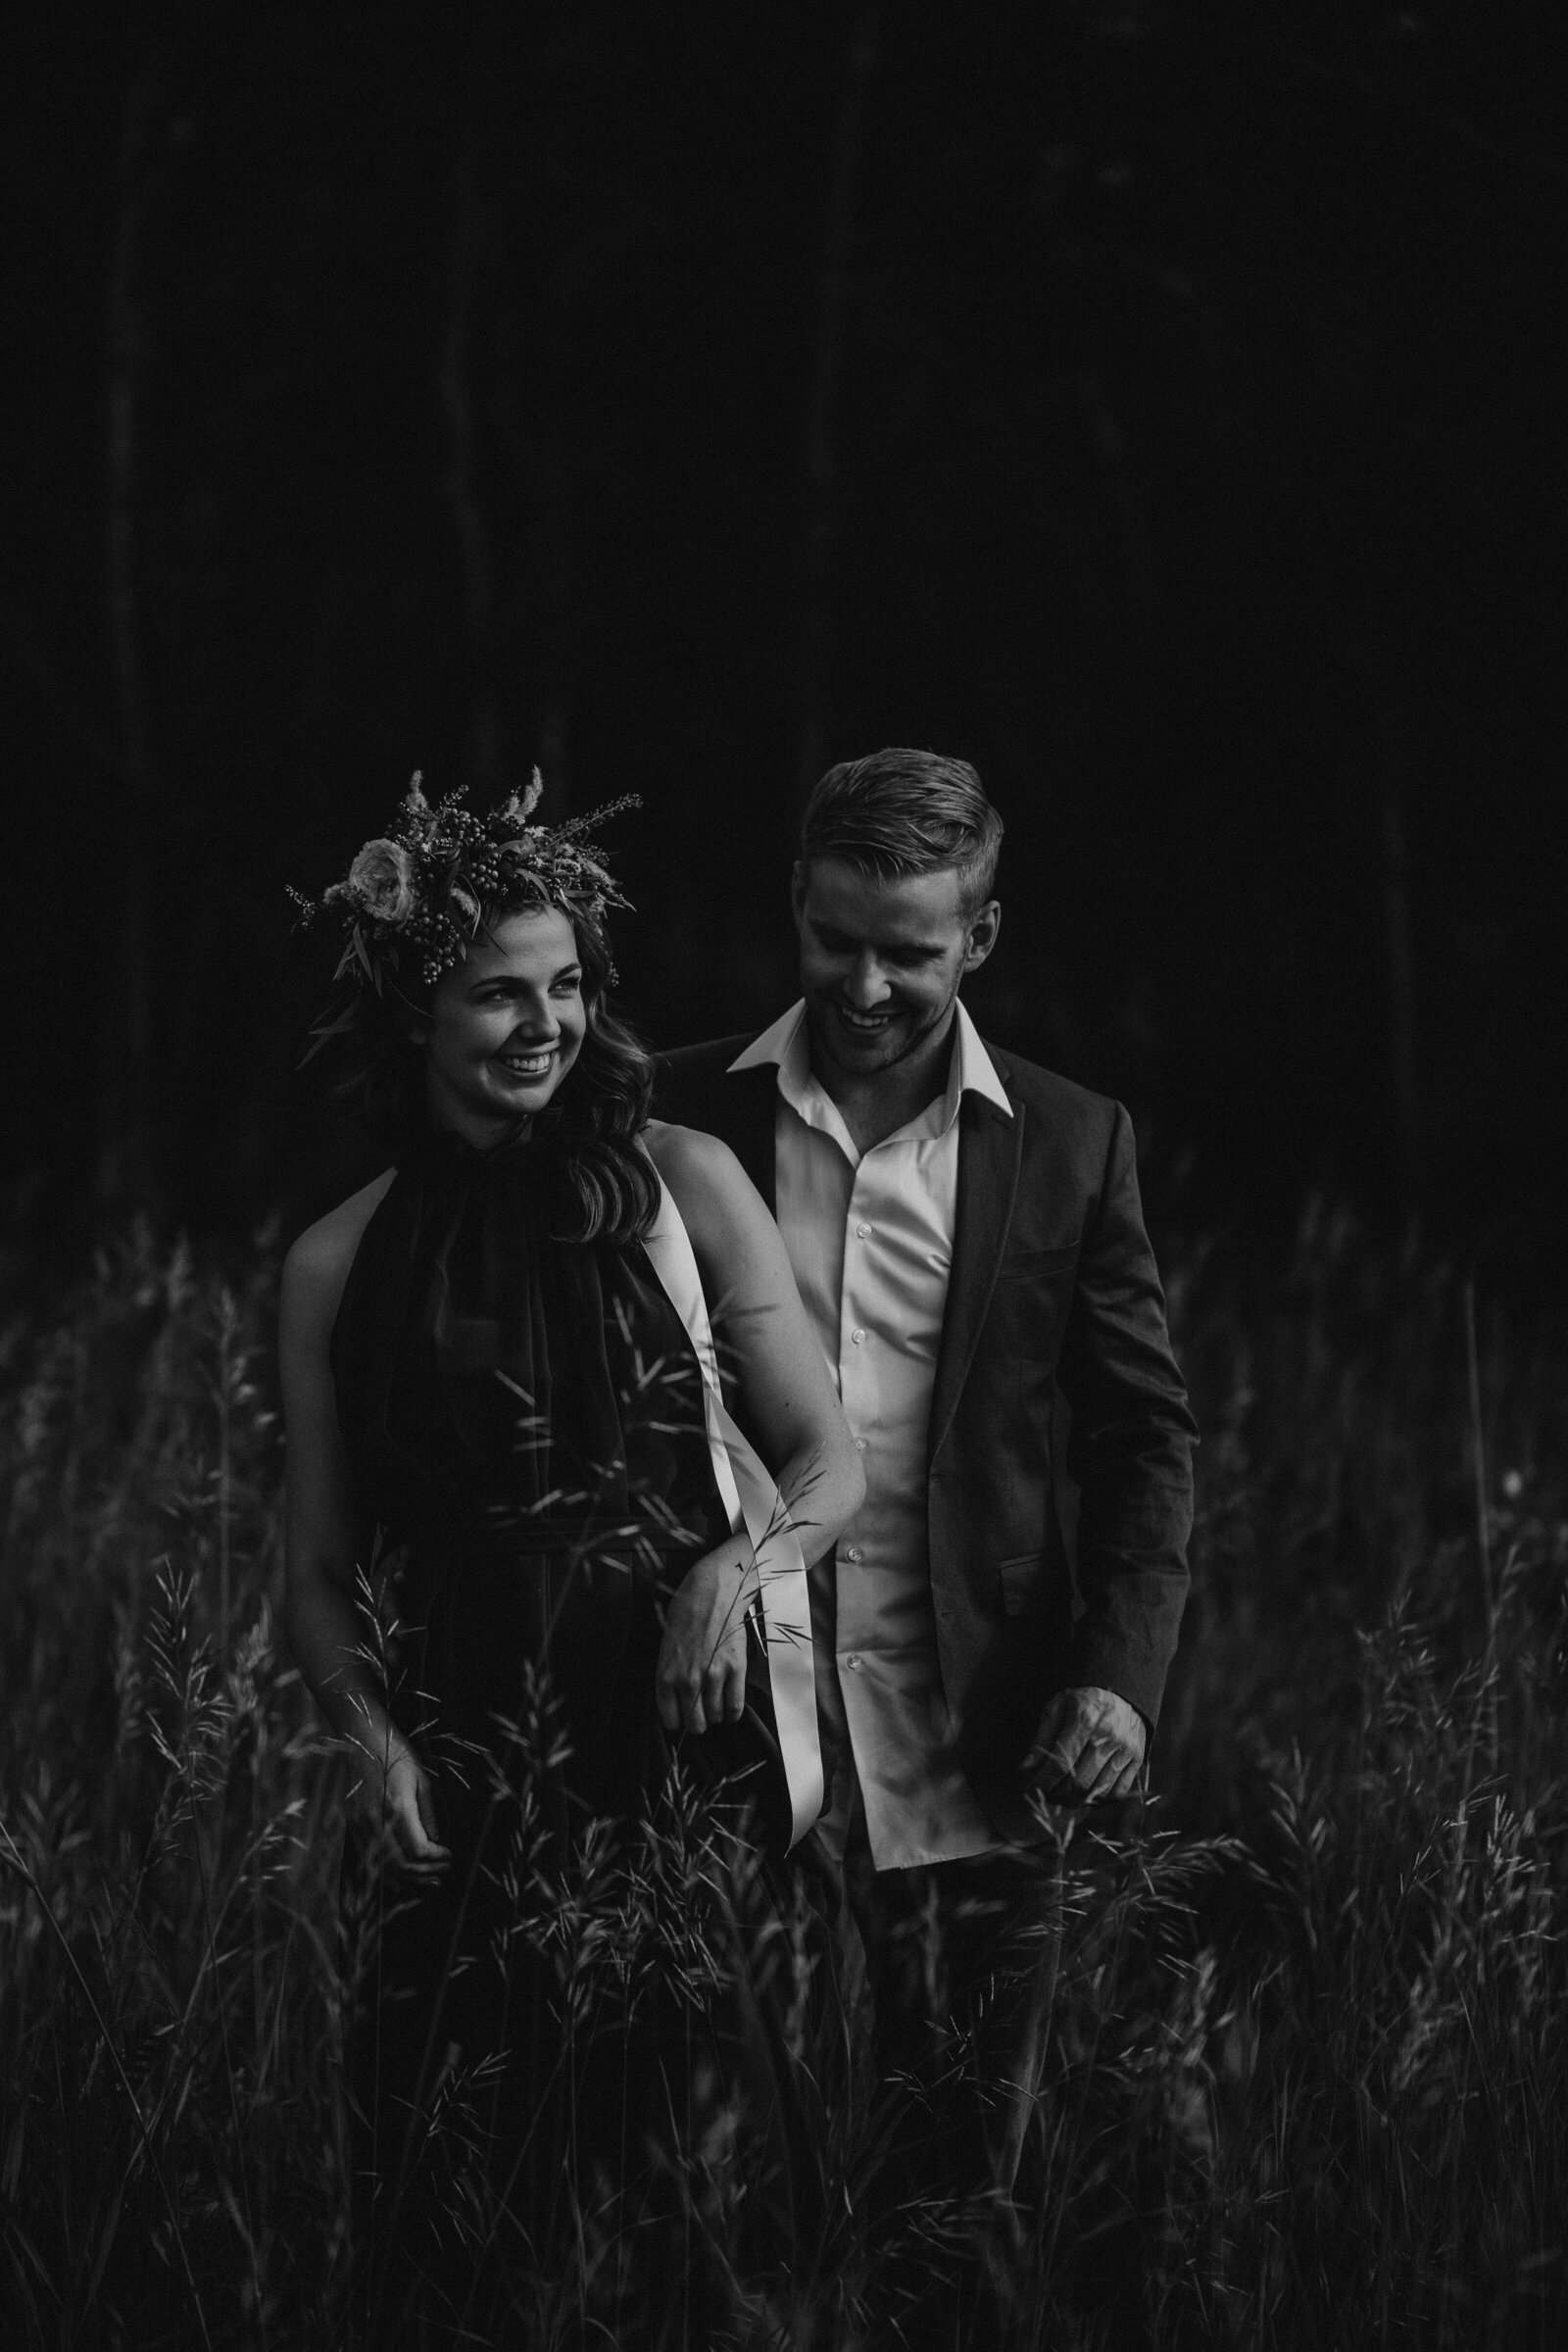 Kenzie-Tippe-Photography-Couples-Photography-1-2